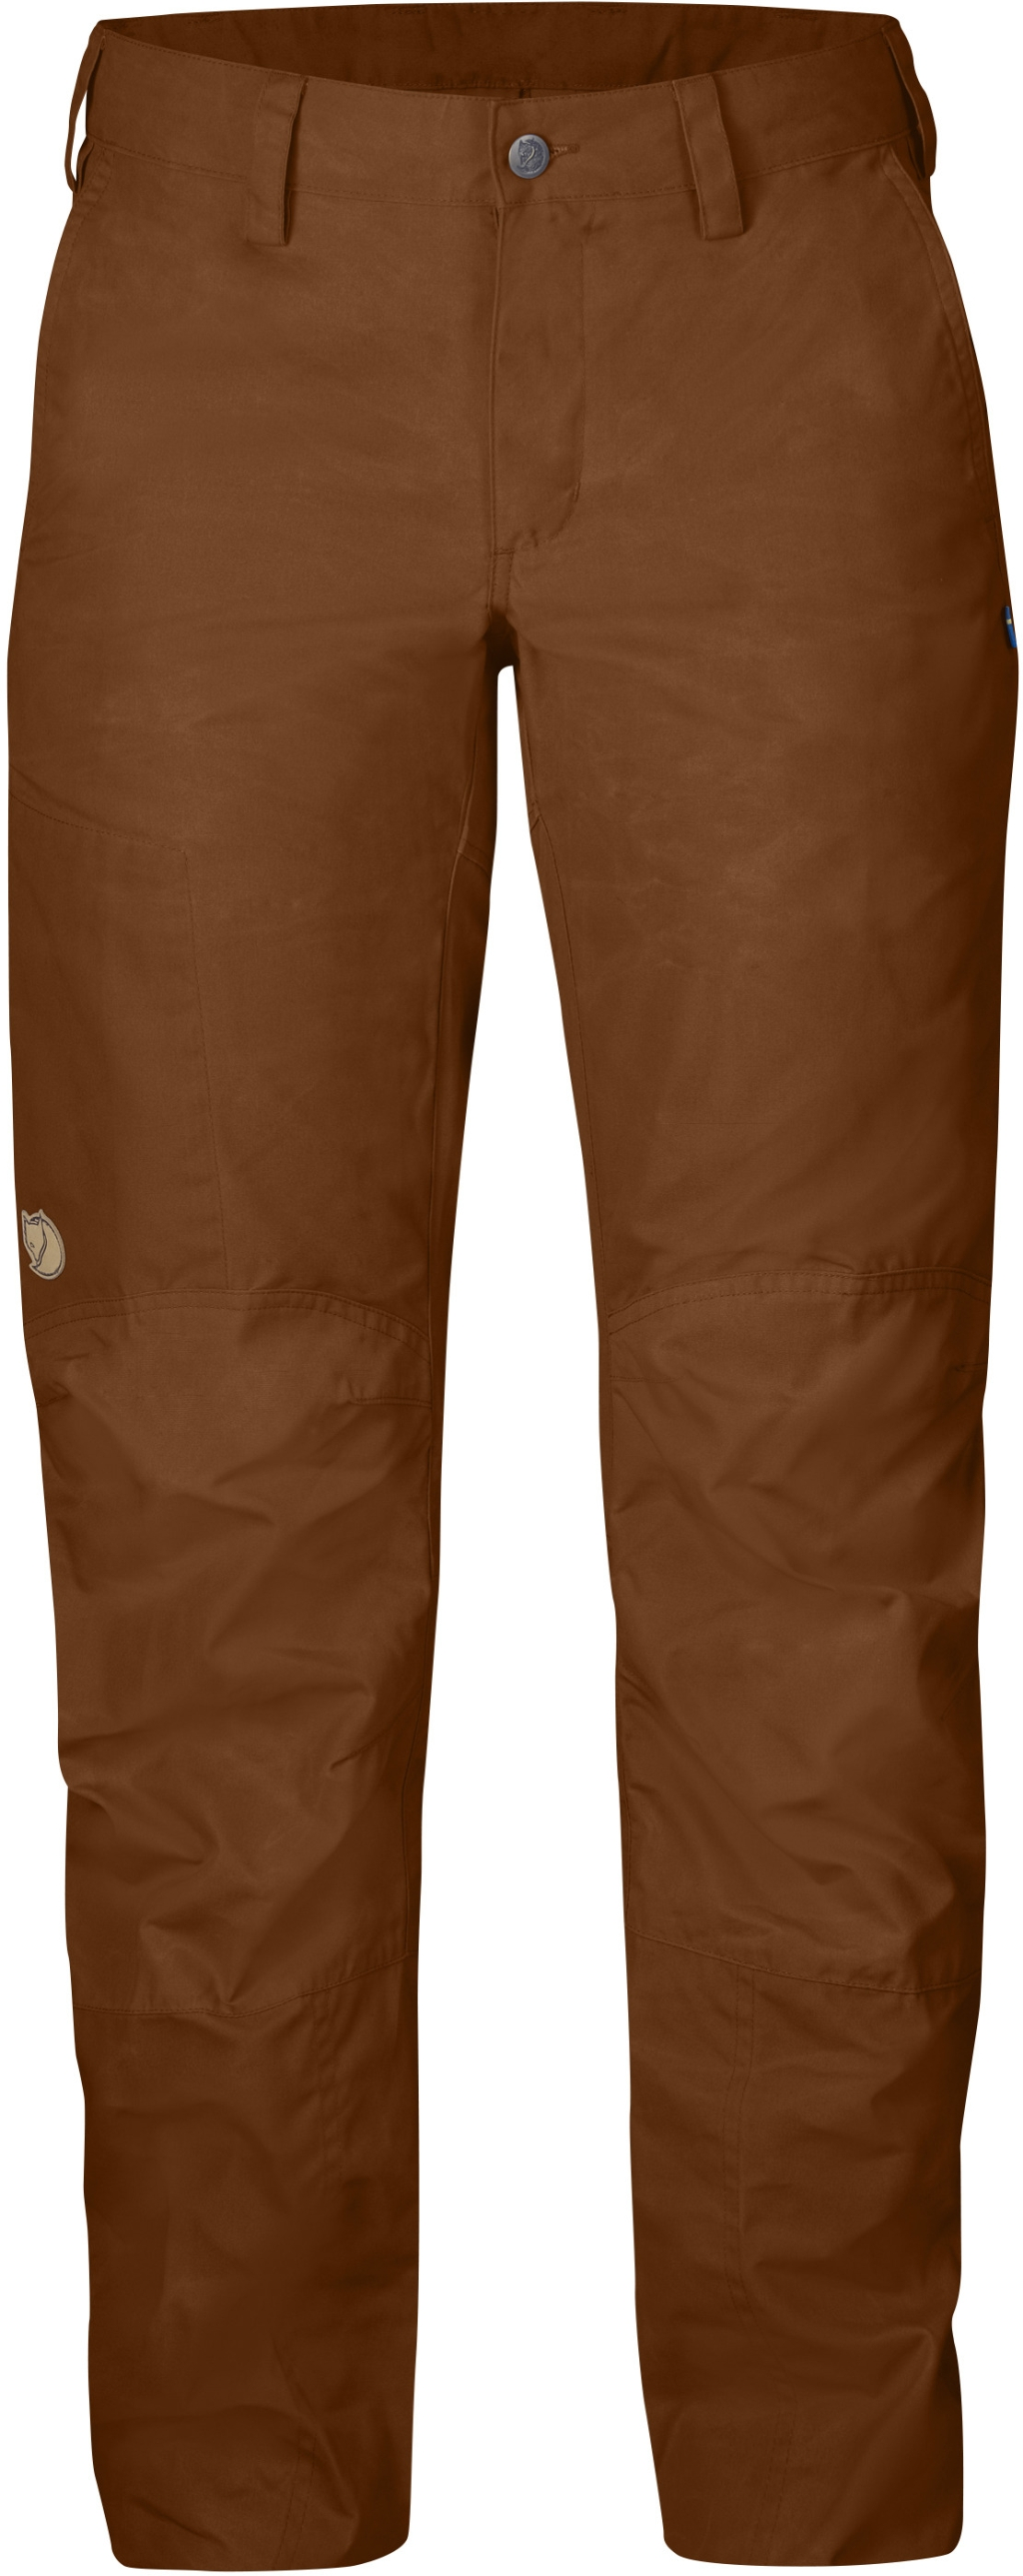 FjallRaven Nilla Trousers Rust-30